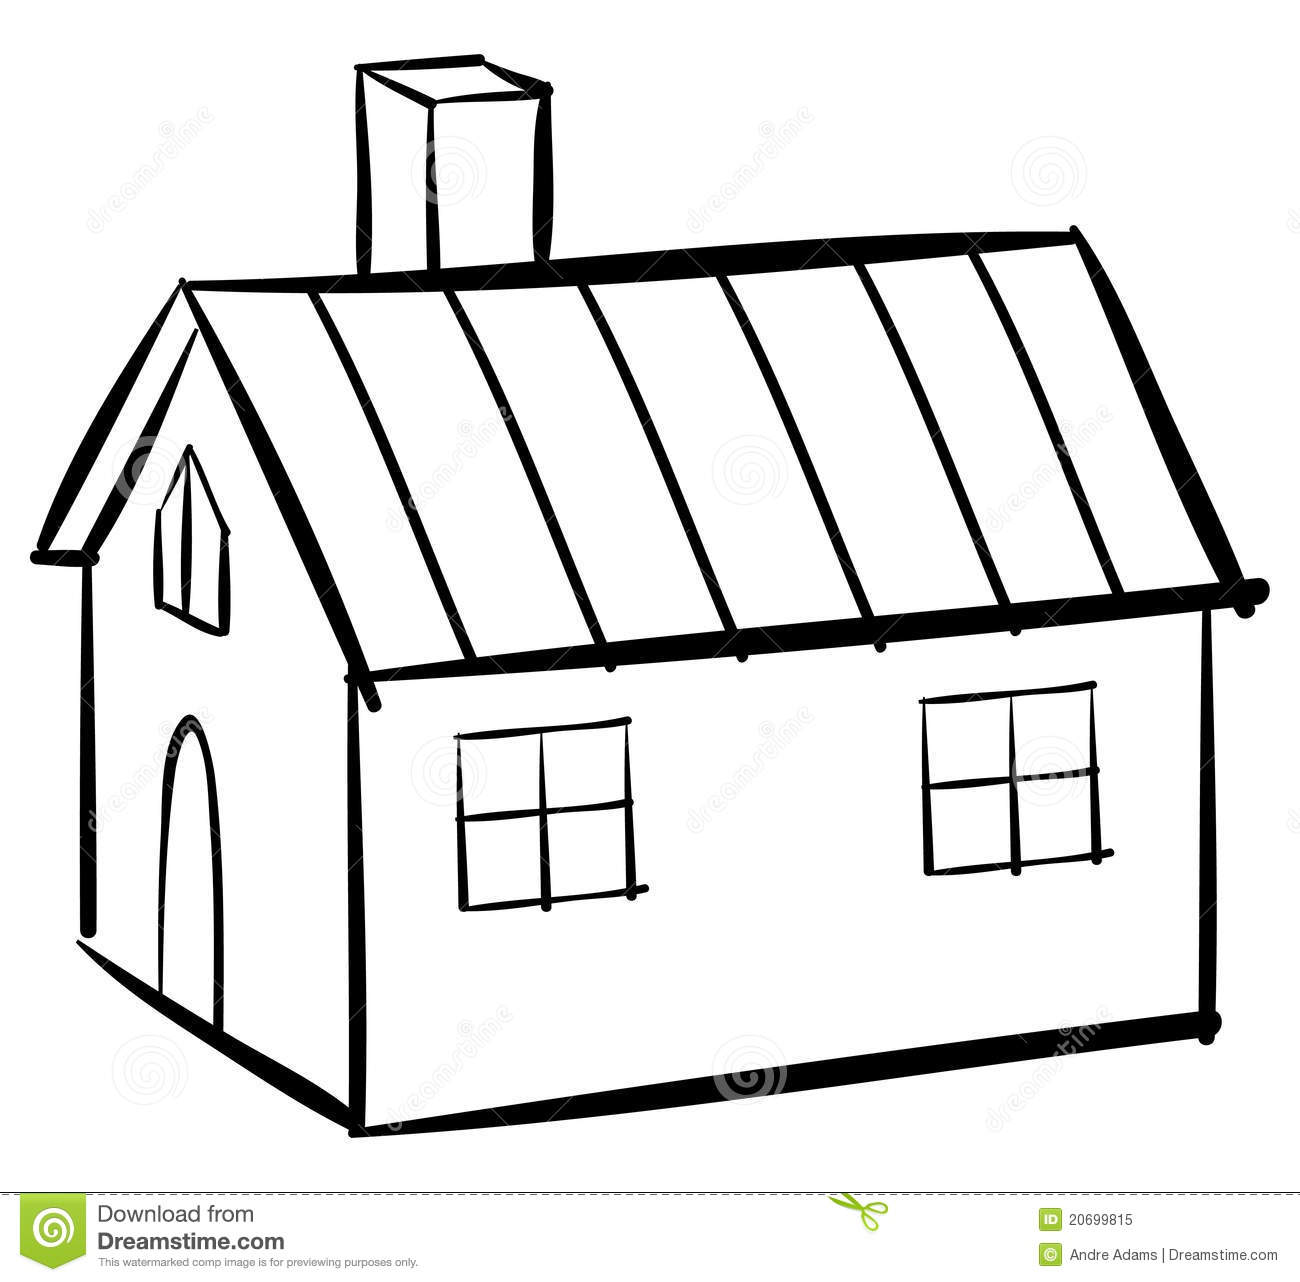 your house home with Royalty Free Stock Photo House Outline Image20699815 on Clouds Outline Coloring Page likewise Cleaning Services furthermore Amelia Earhart Quotes together with Hillside Home Retrofits 2 furthermore Royalty Free Stock Photo House Outline Image20699815.